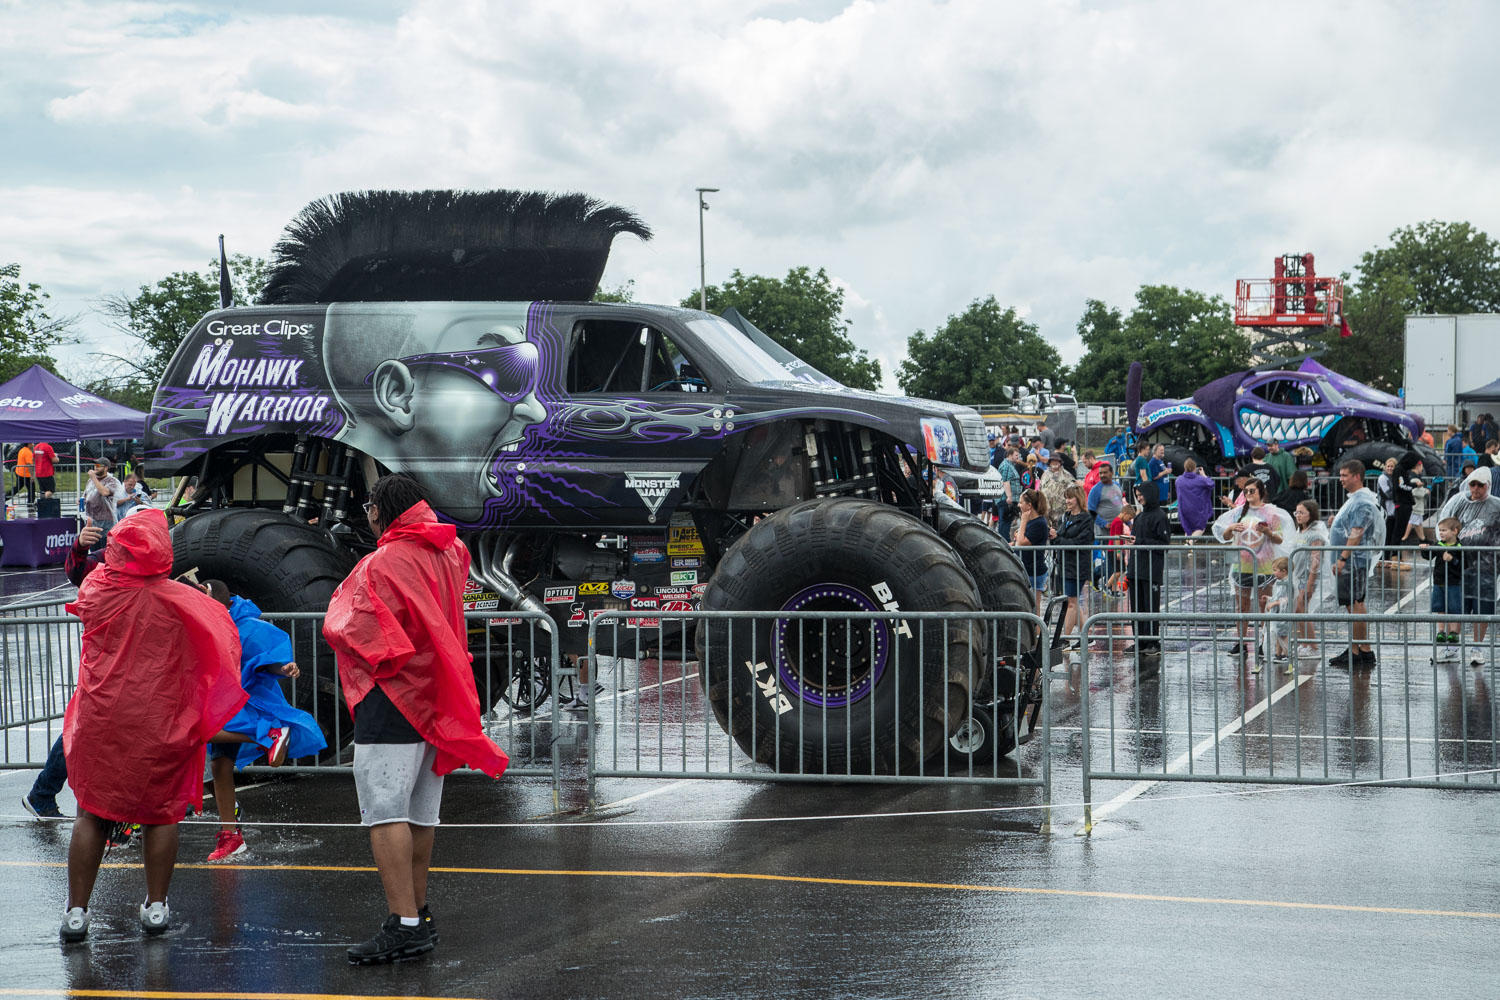 Fans brave the rain while checking out the trucks during the Monster Jam Pit Party prior to the main event at GEHA Field at Arrowhead on Saturday evening, June 26, 2021.